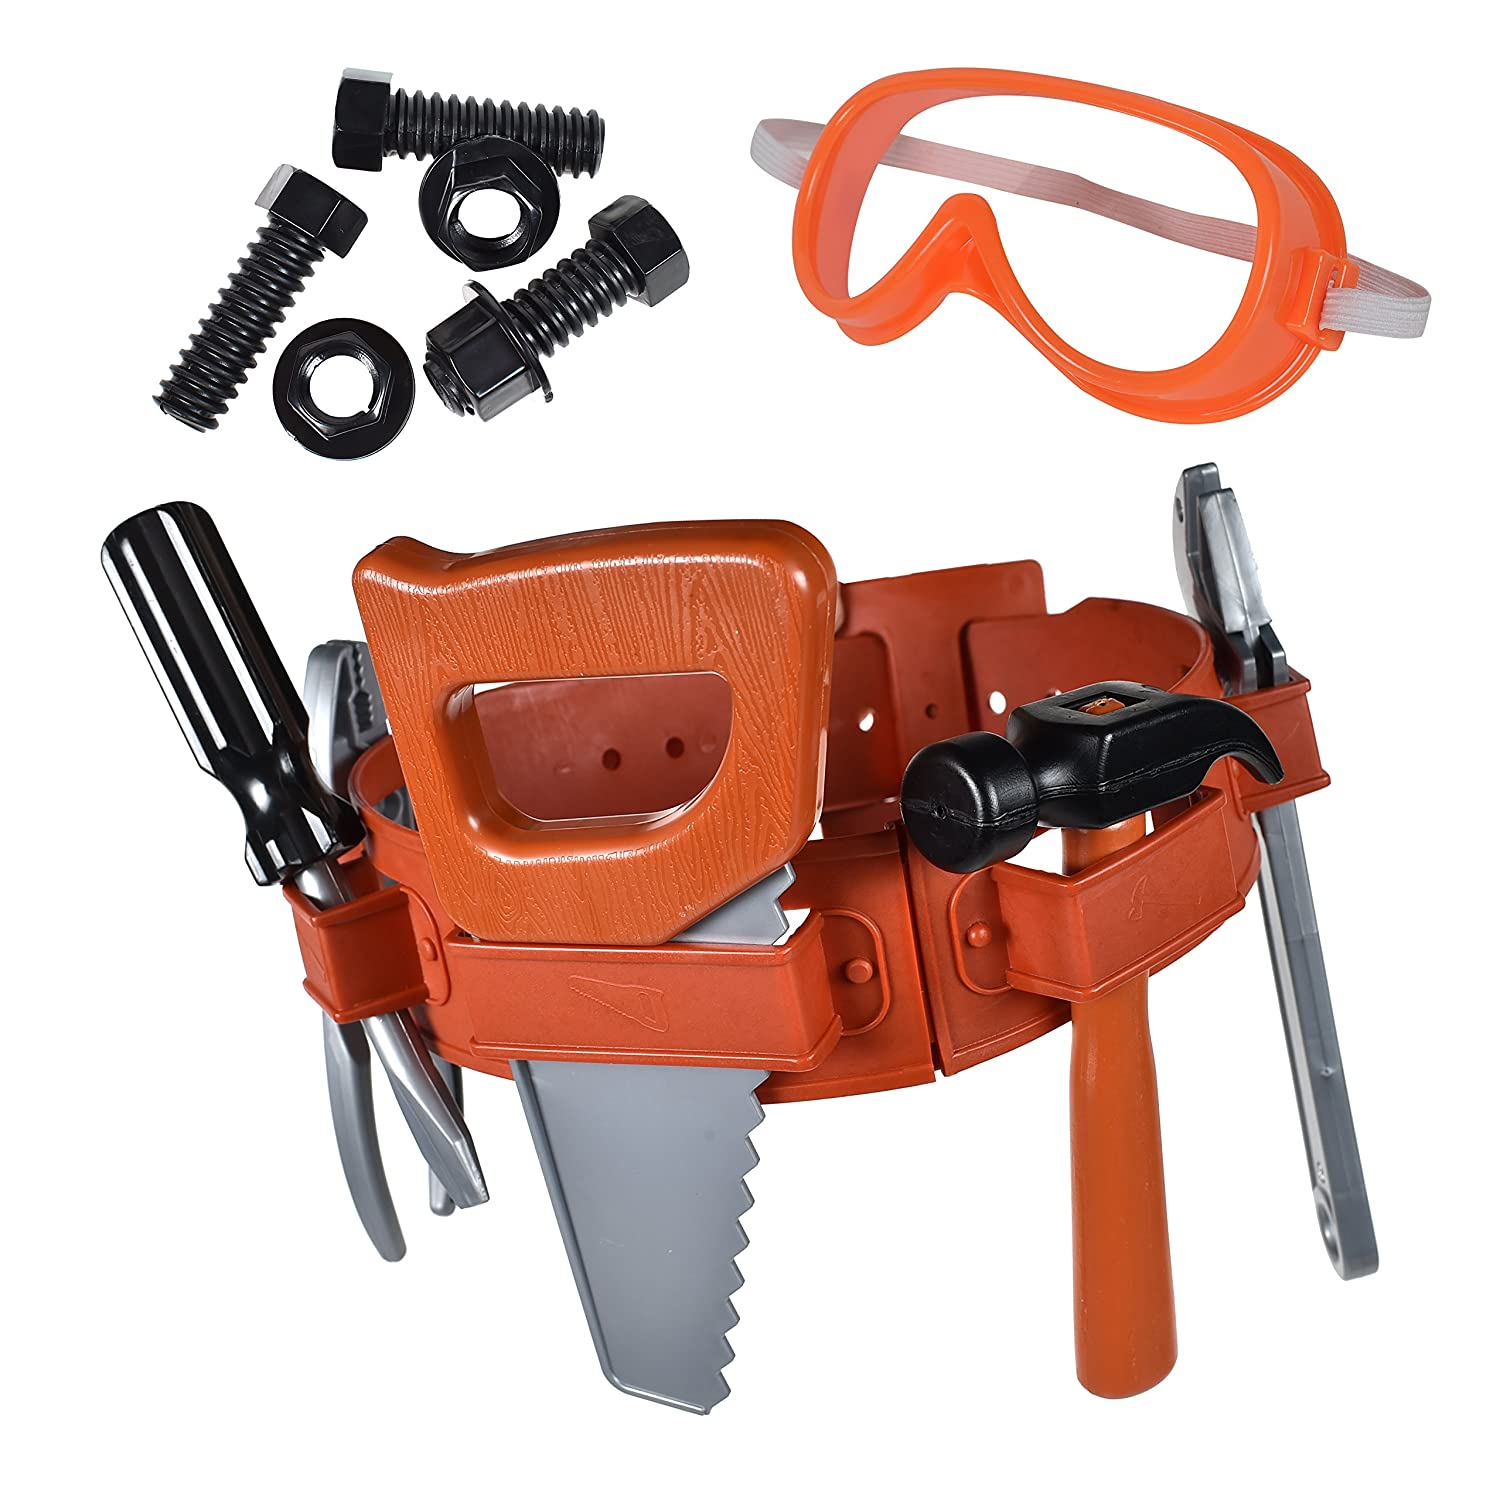 Maxx Action Power Tools 22-Piece Deluxe Tool Belt Set for Kids with Tape Measure, Goggles and Pretend Role Play Toys